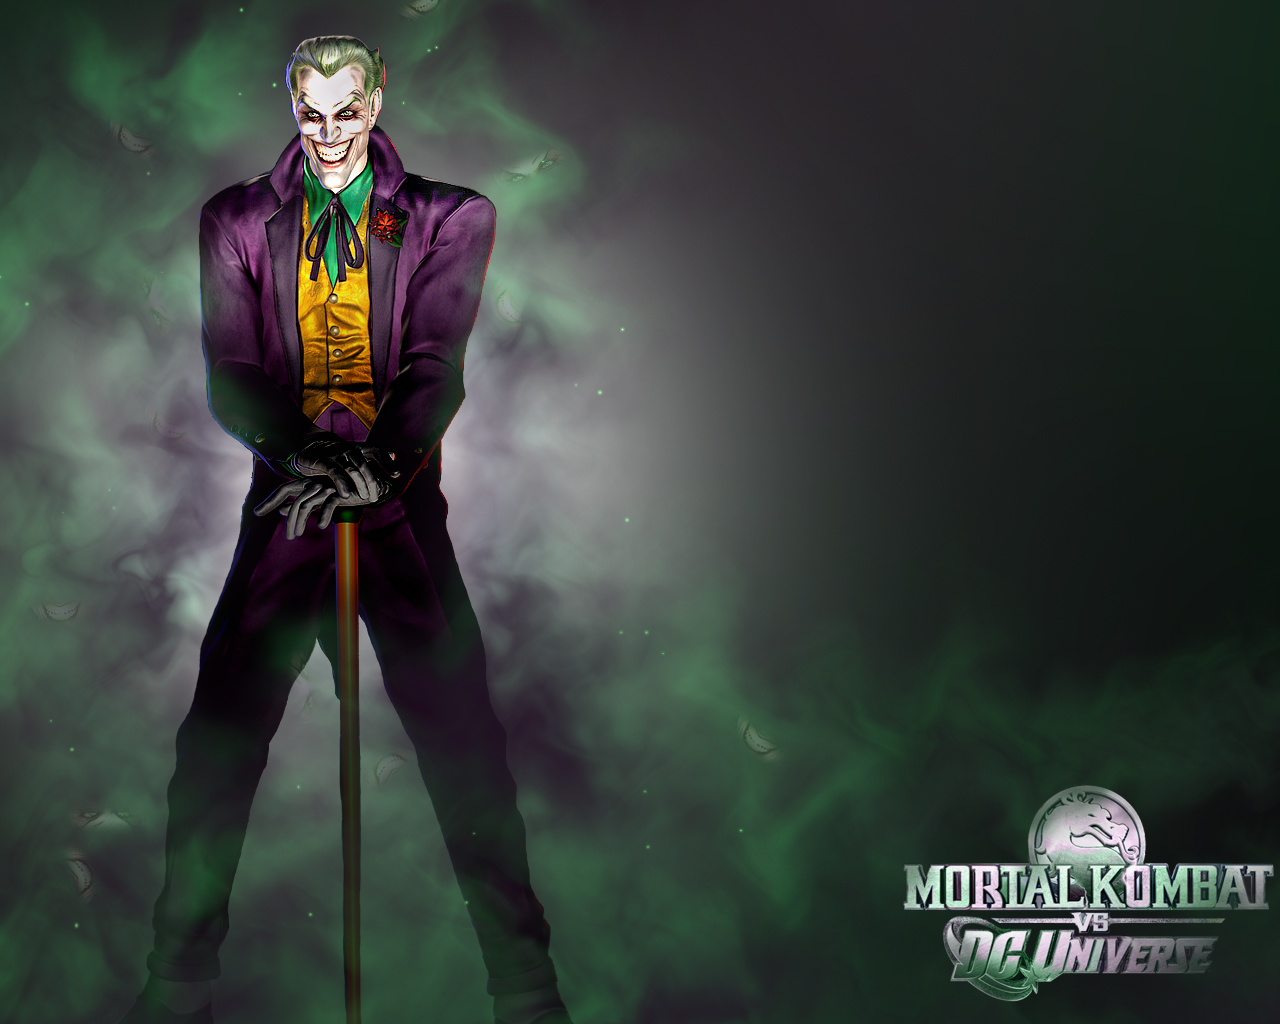 Joker 1280x1024 wallpapers download - Desktop Wallpapers, HD and ...